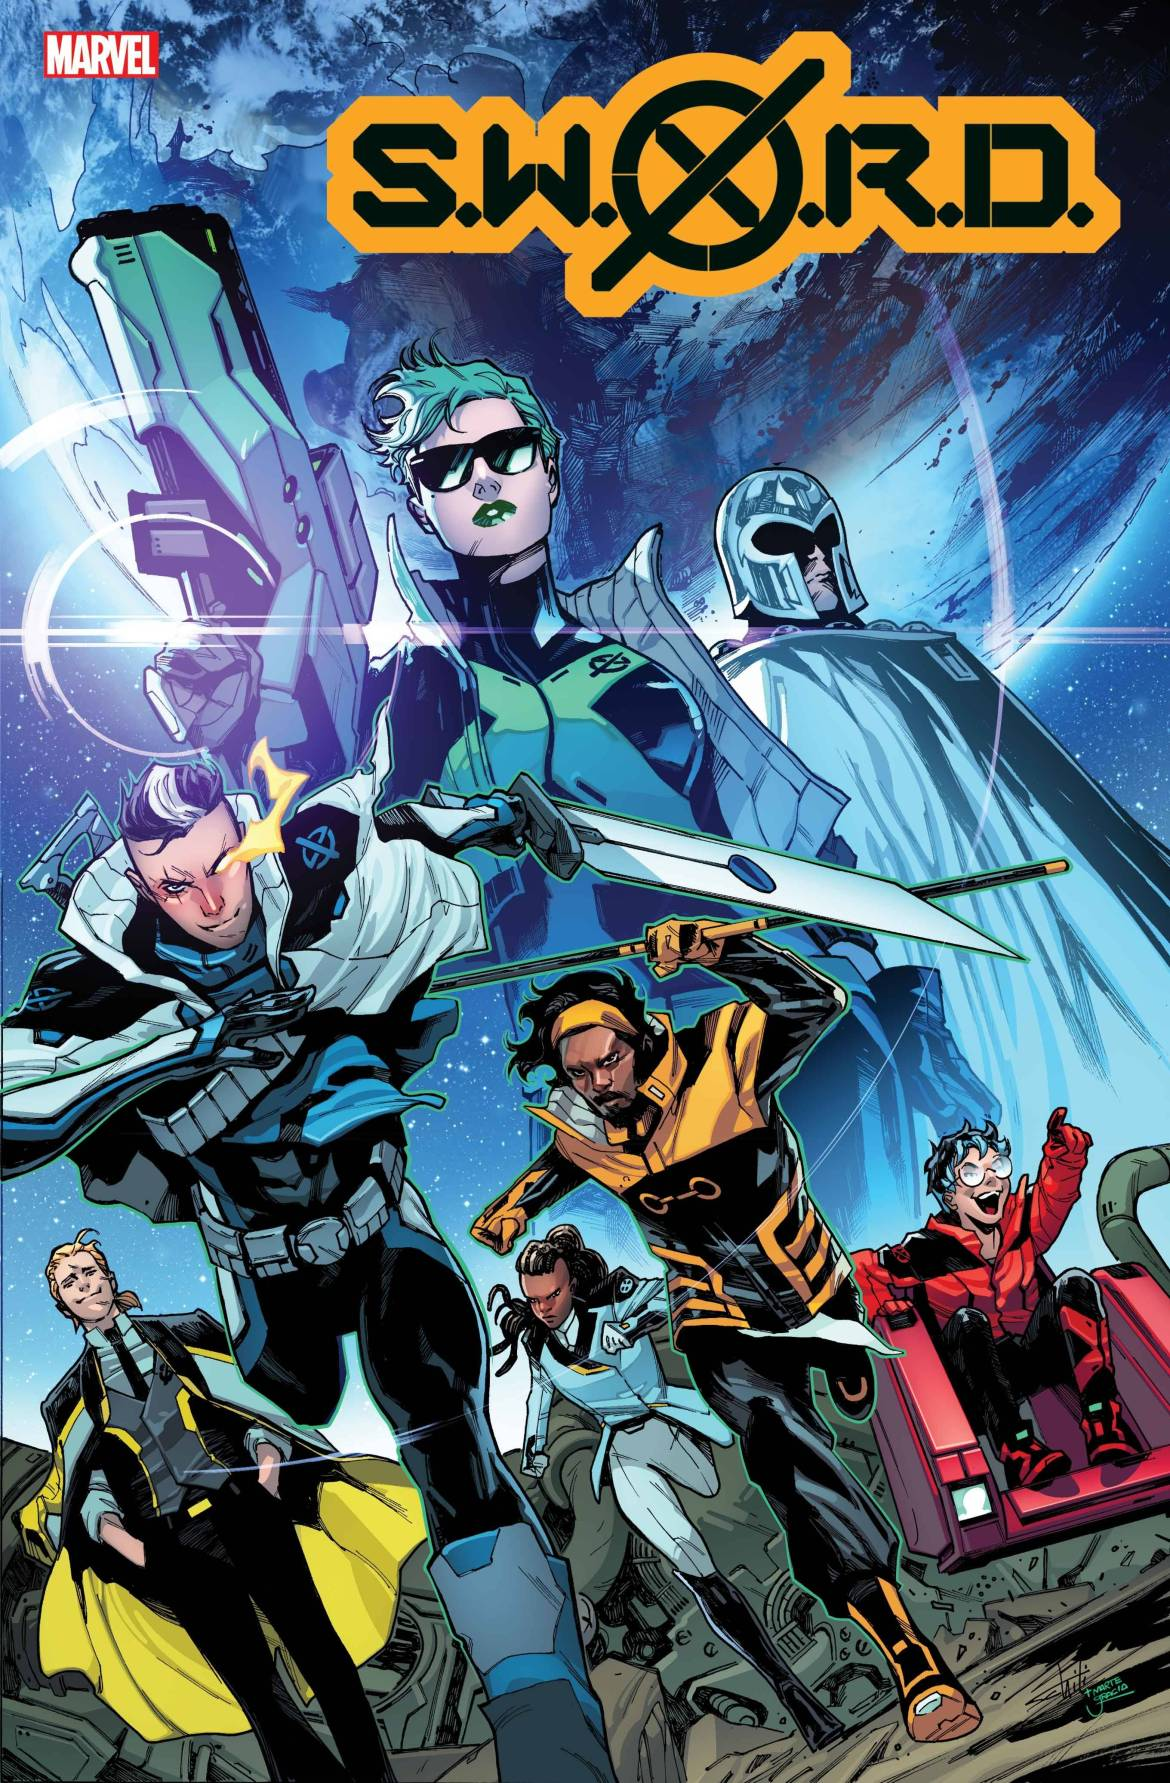 STL170603 ComicList: New Comic Book Releases List for 12/09/2020 (2 Weeks Out)